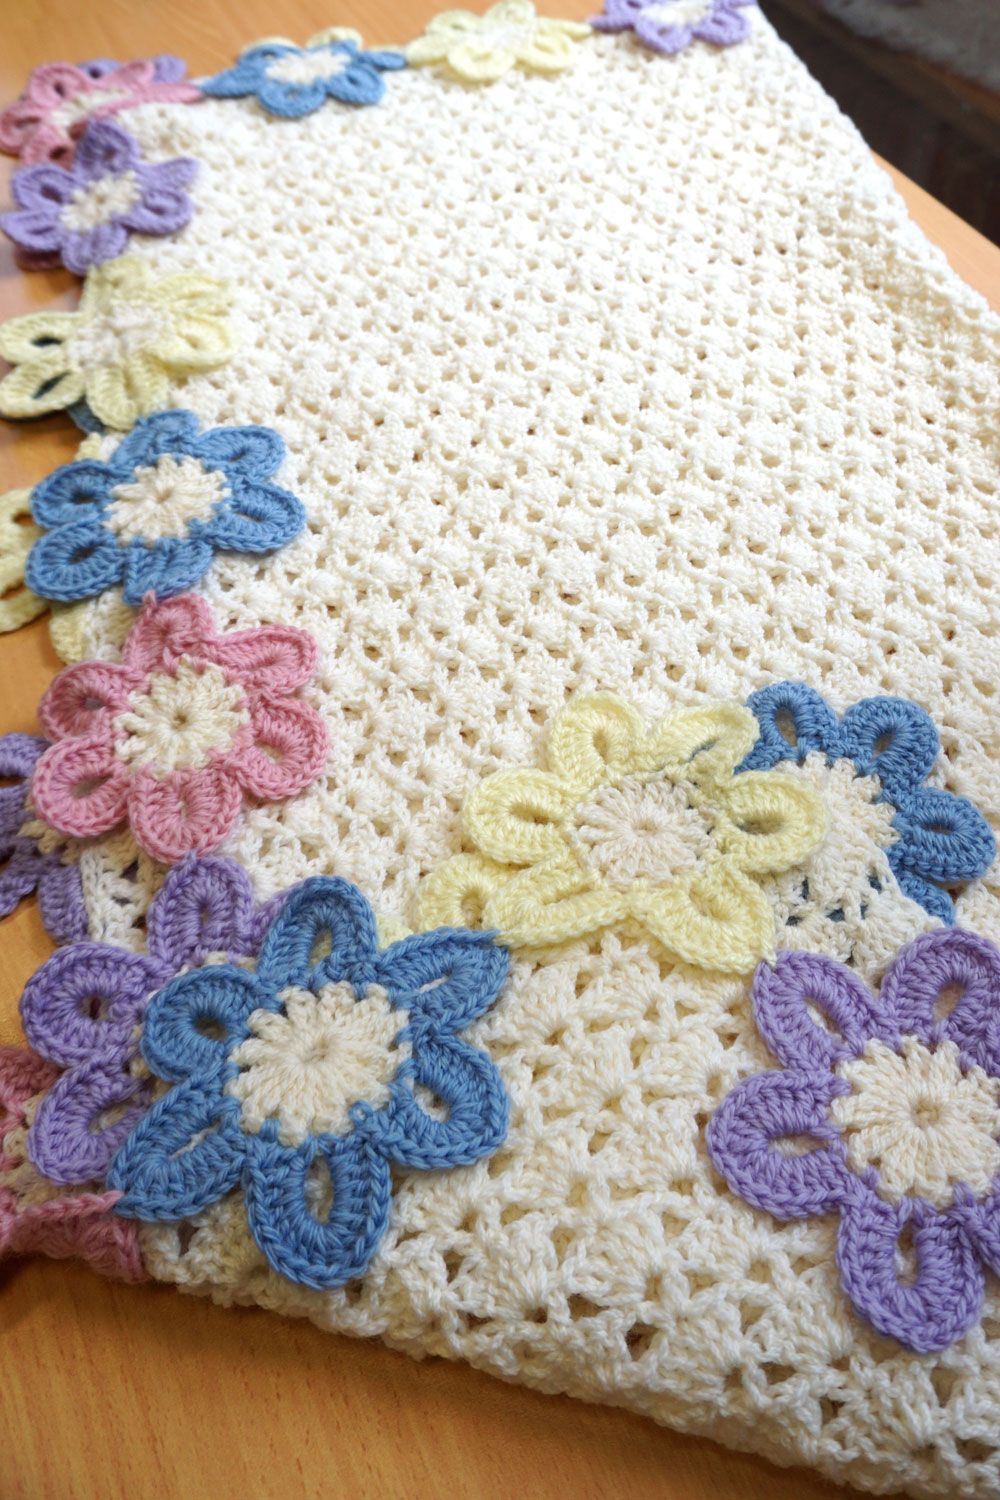 Beautifully crocheted cream patterned blanket and edged with colourful crocheted flowers